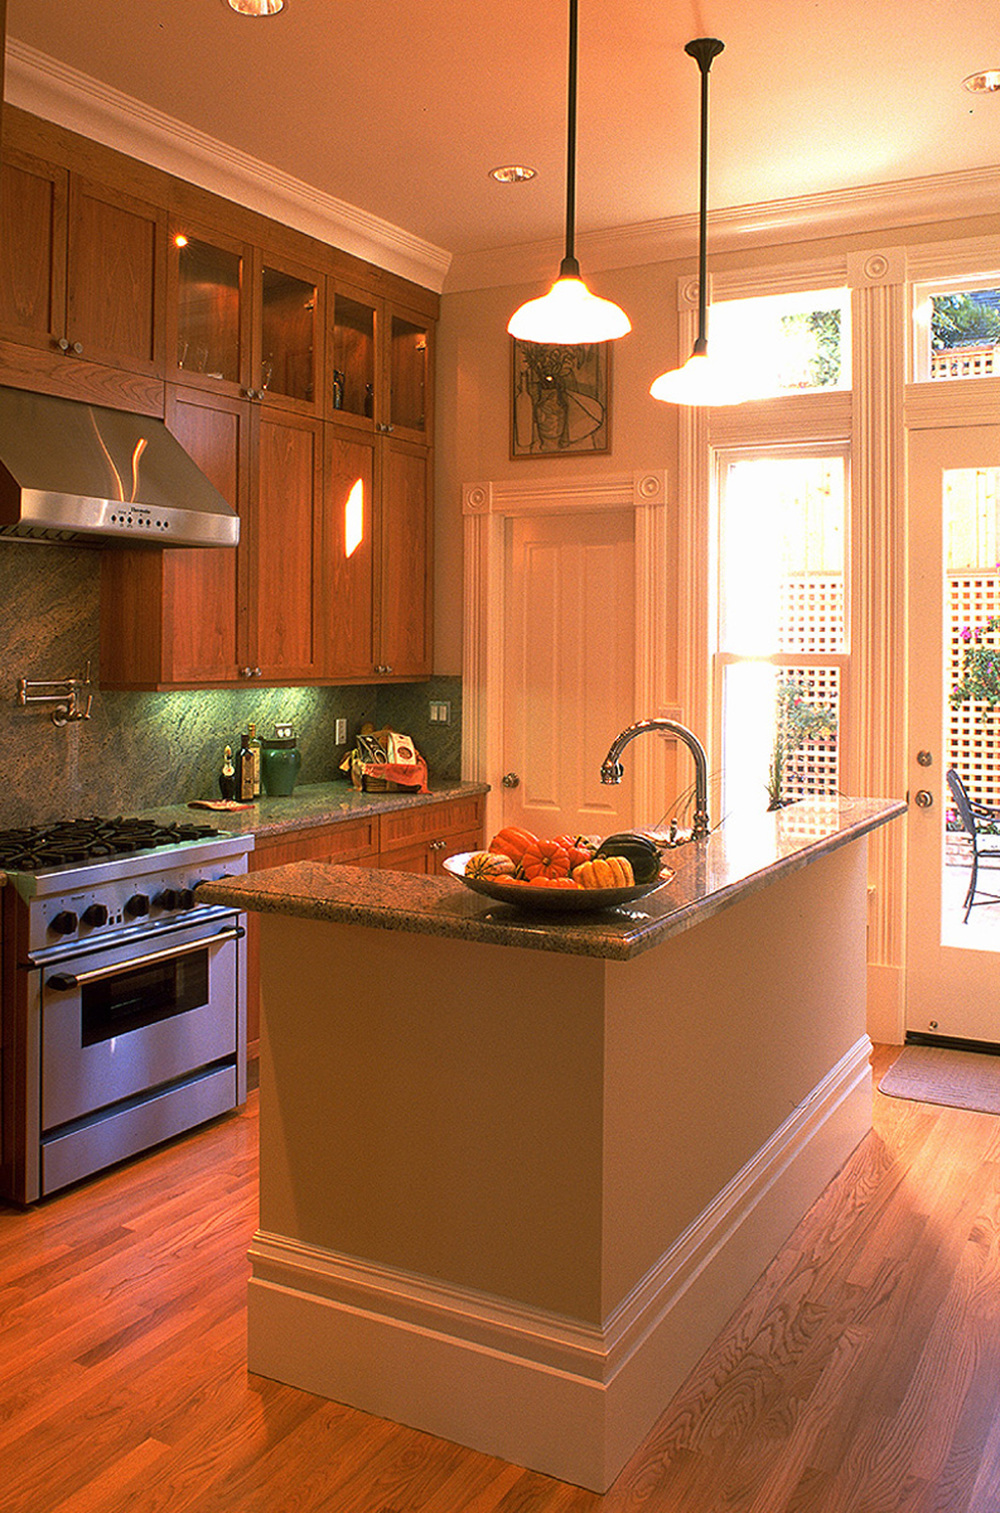 6 - 4031 Kitchen to Rear.jpg